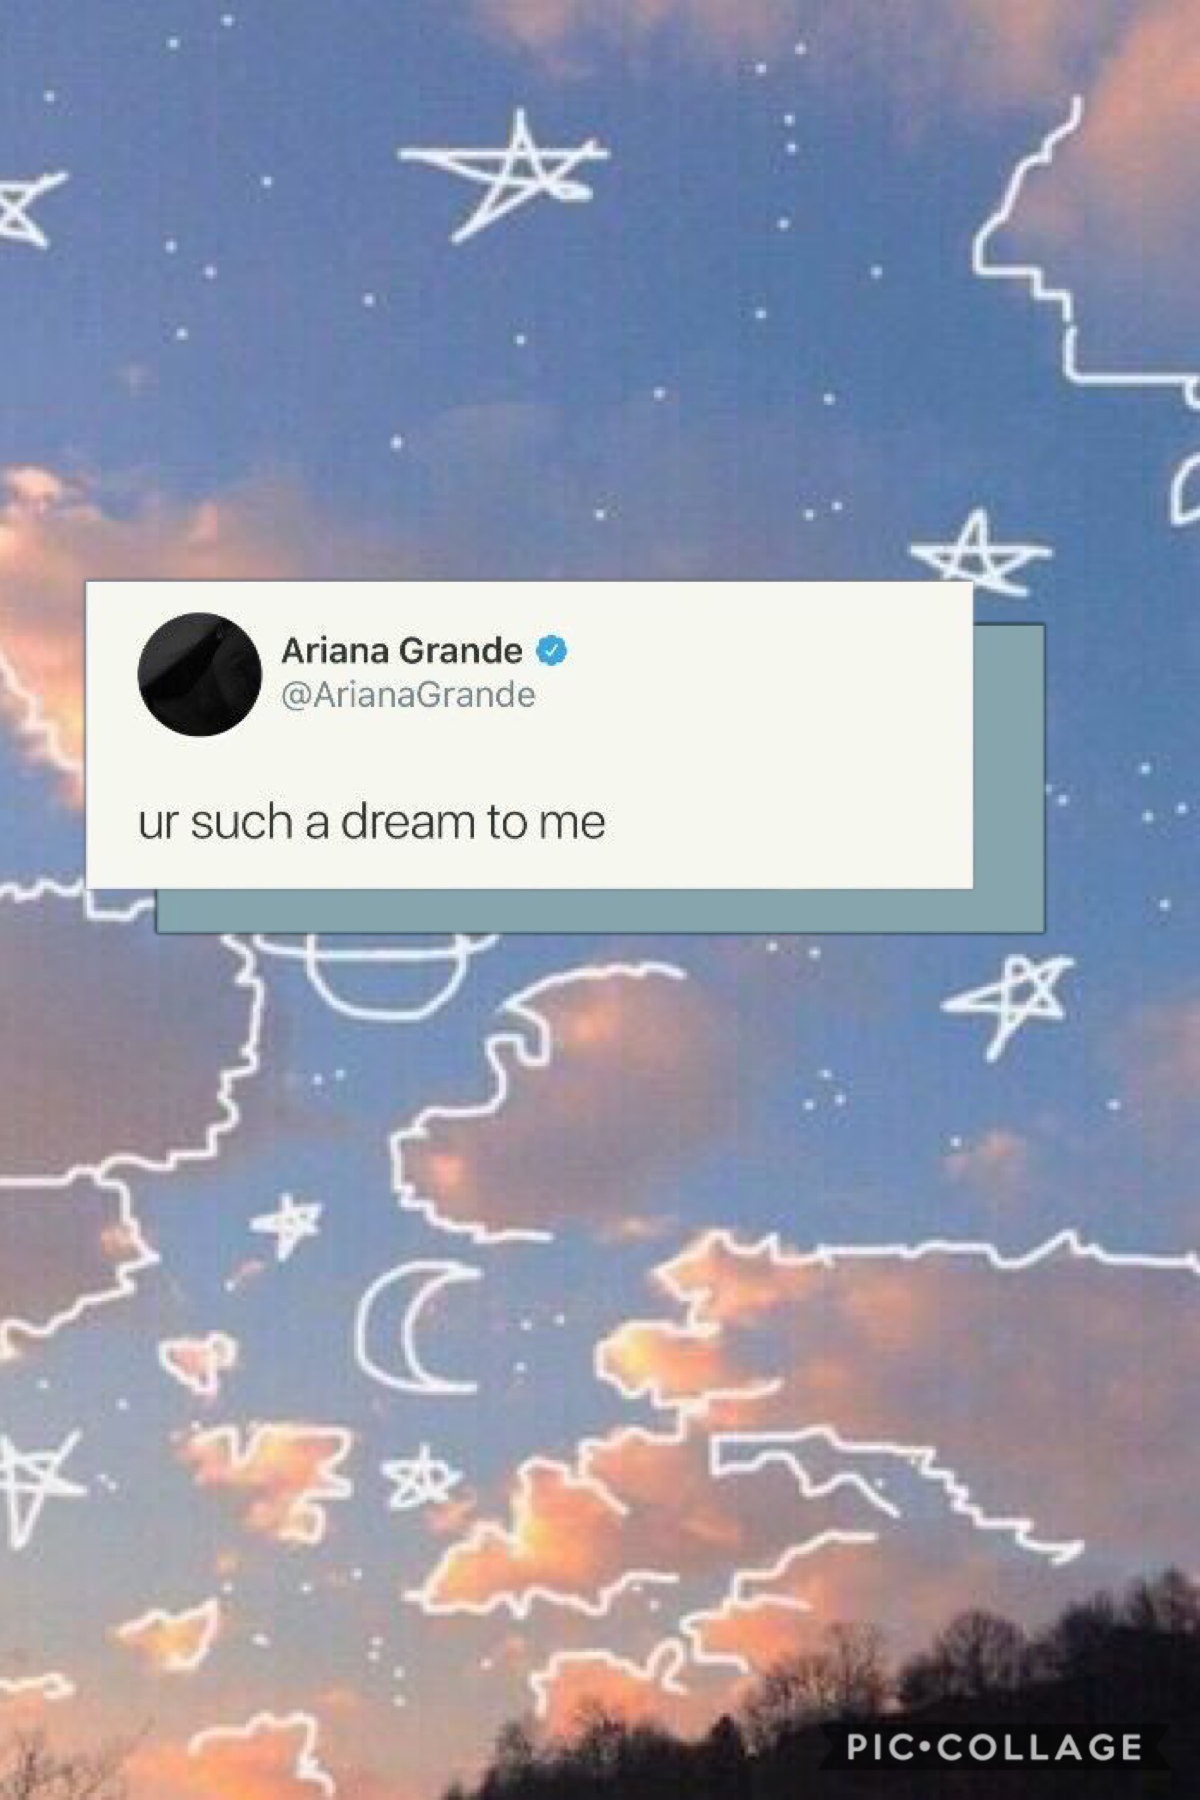 ☁️ur such a dream to me☁️